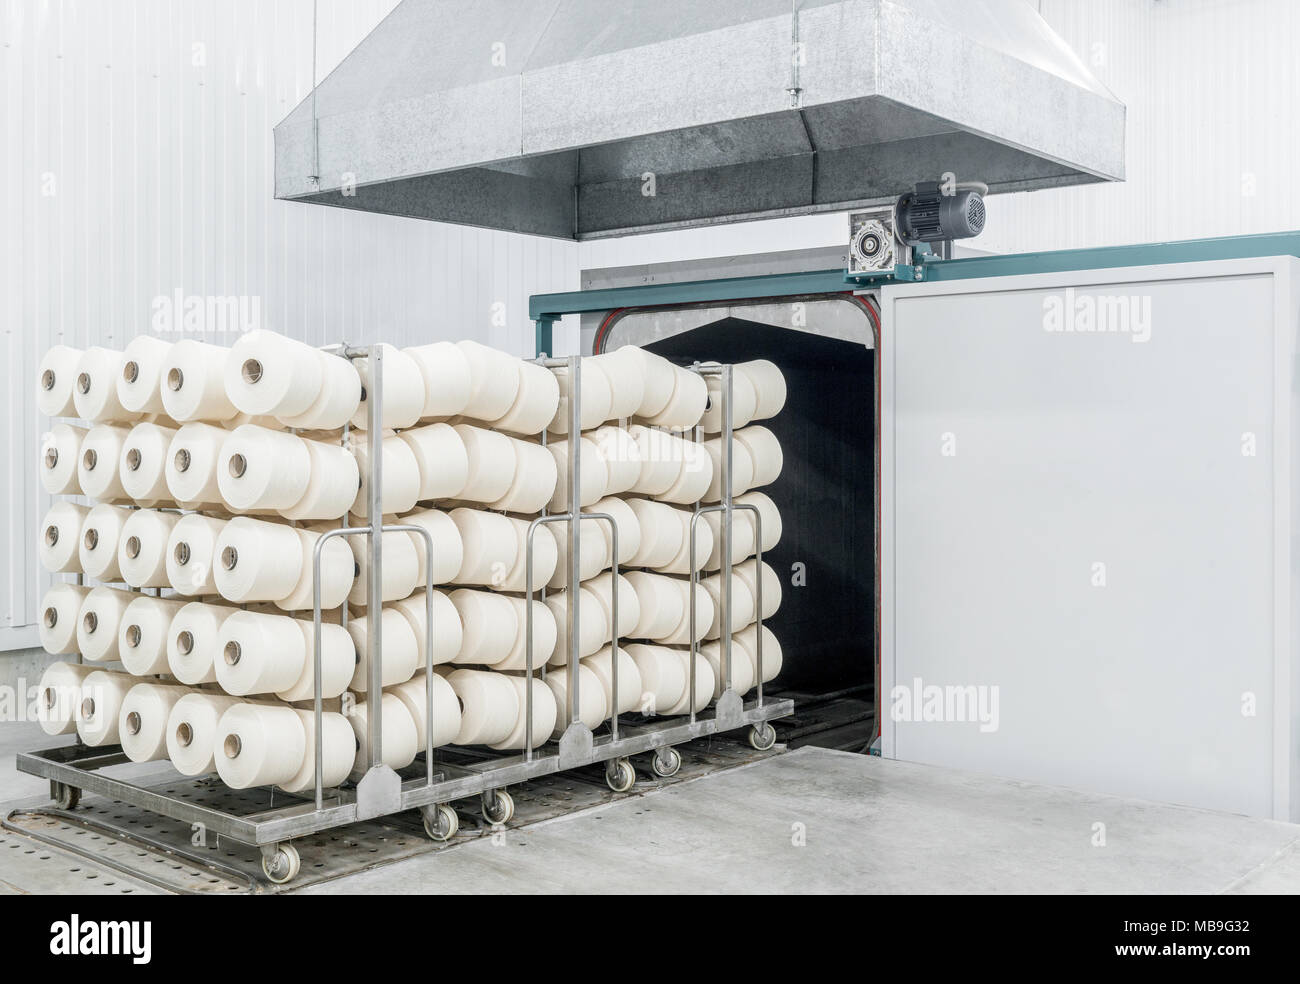 trolley with finished products in the drying room at the textile factory - Stock Image